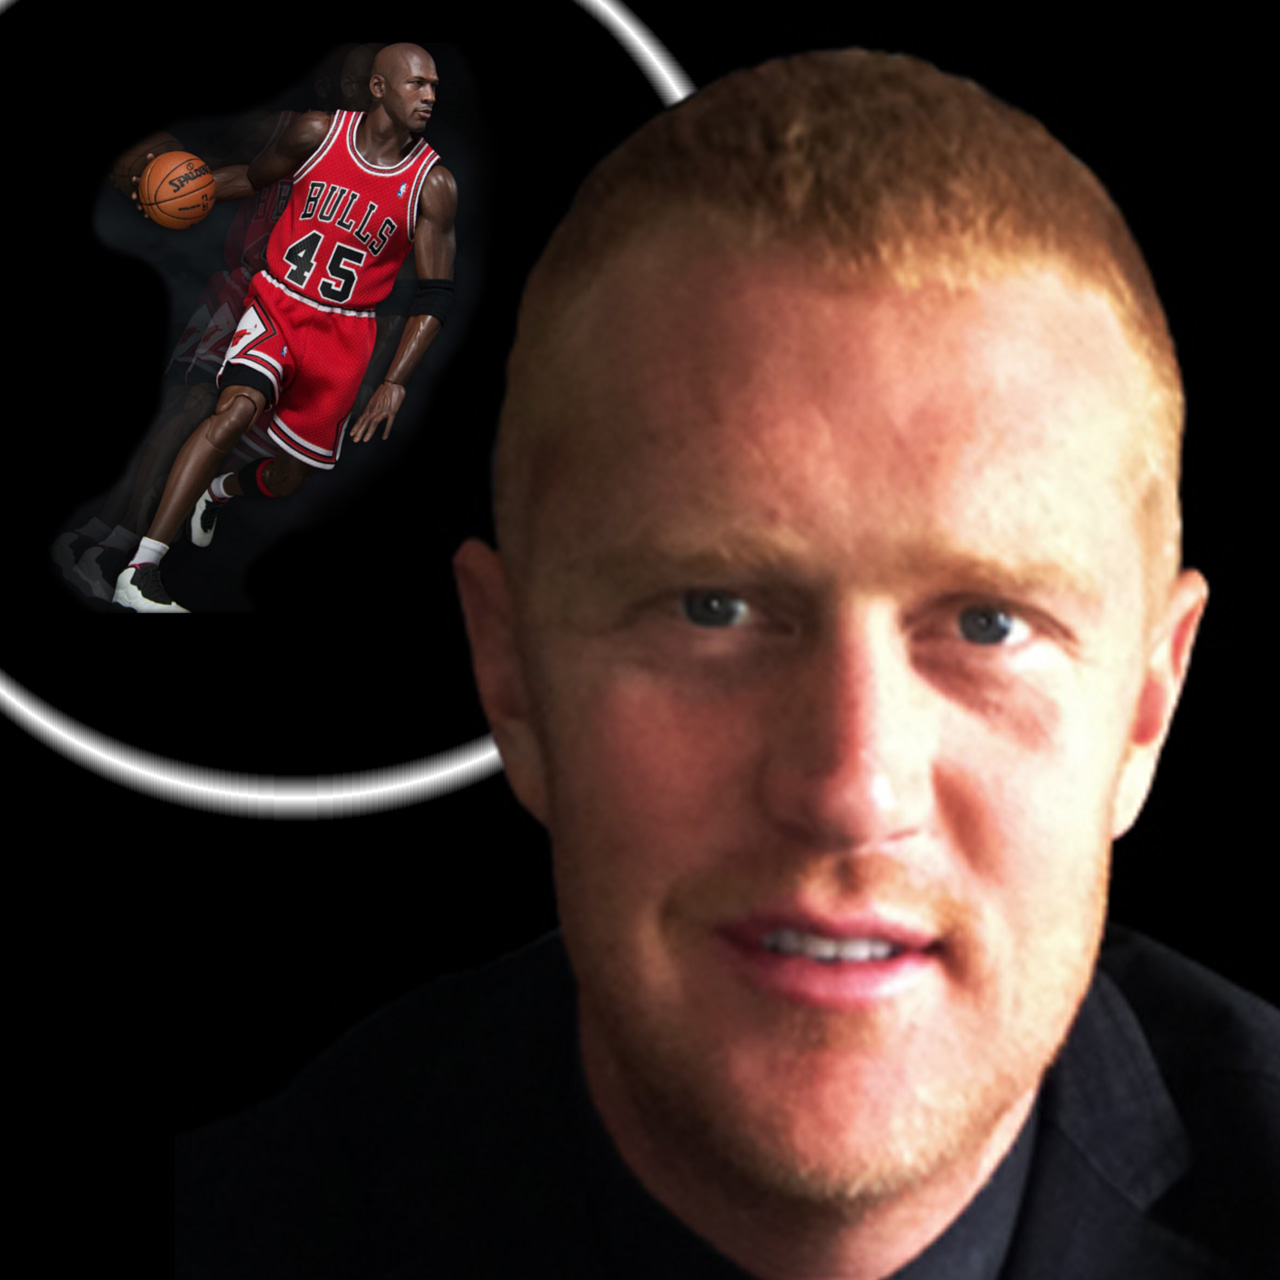 NBA G.O.A.T – Michael Jordan or Brian Scalabrine?